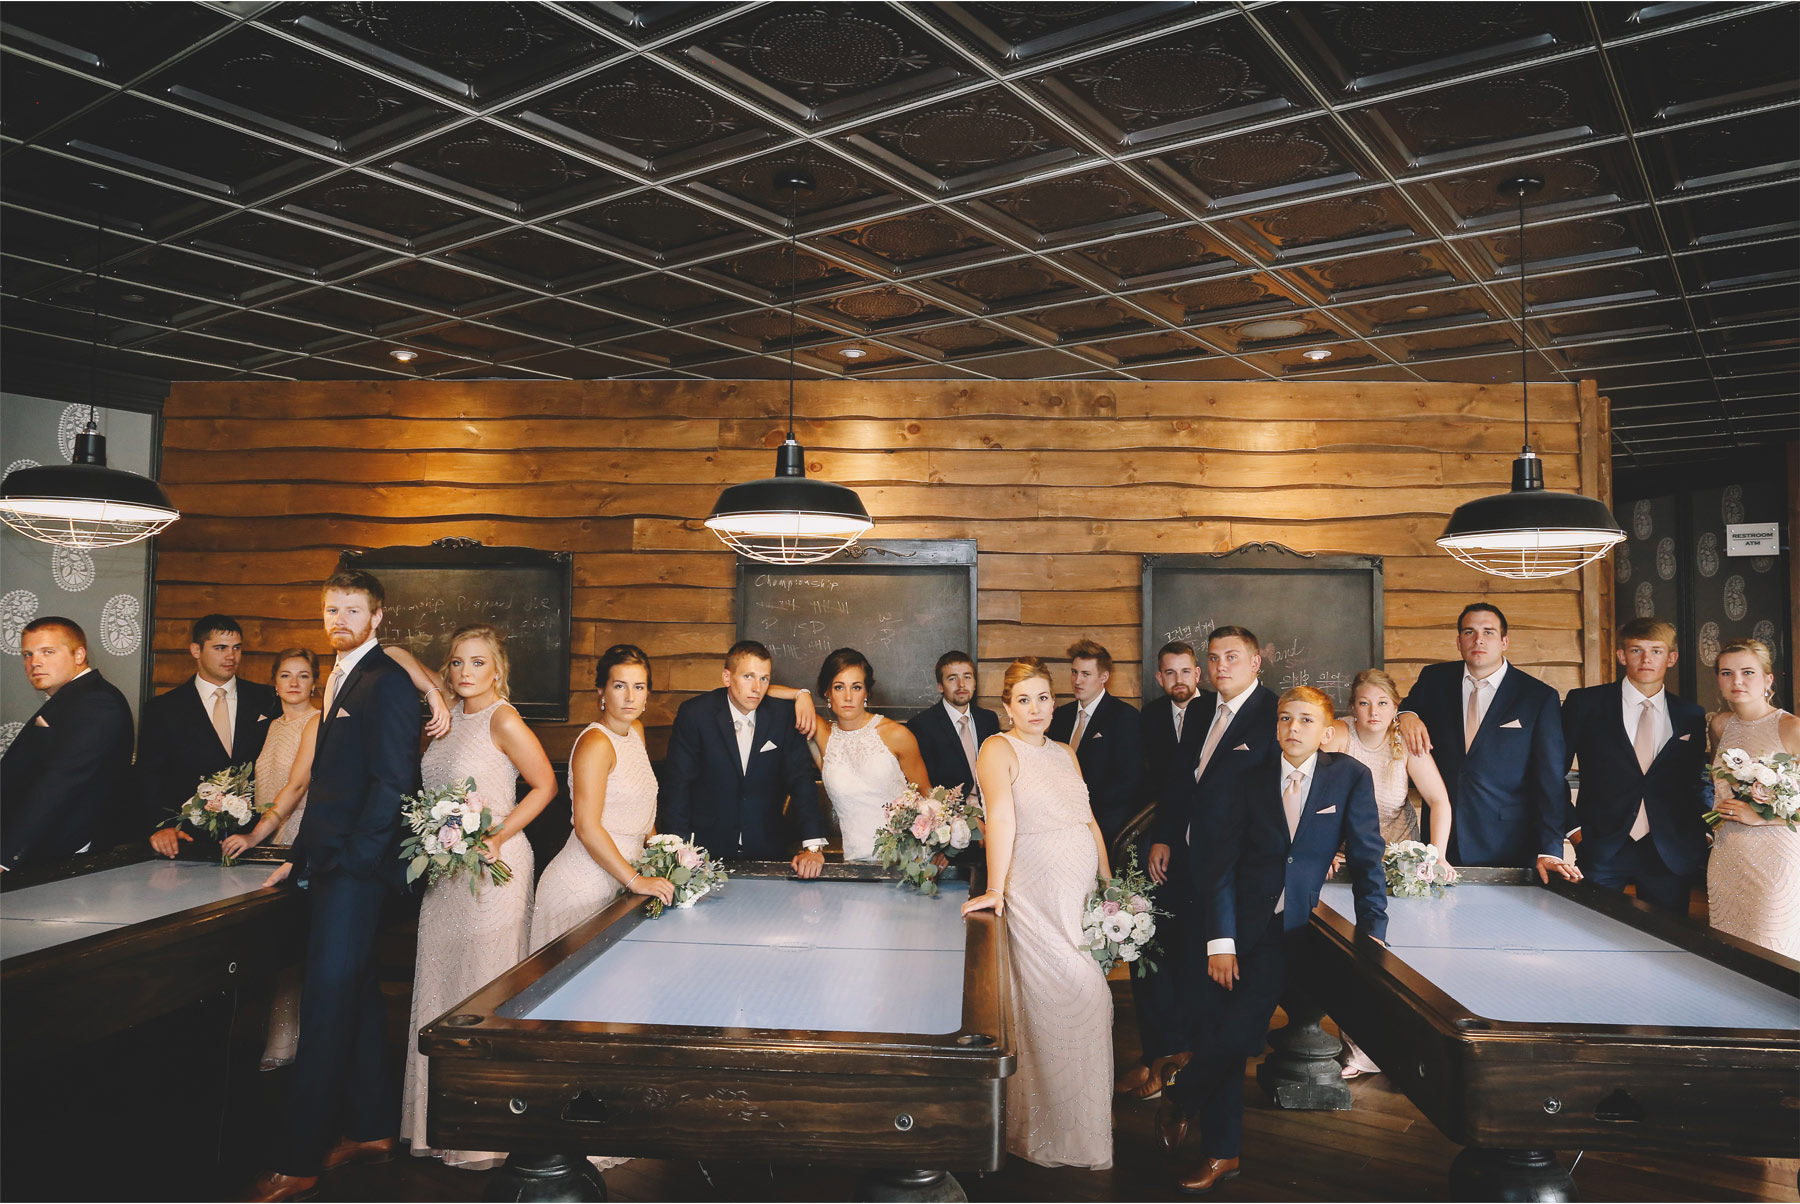 06-Minneapolis-Minnesota-Wedding-Photography-by-Vick-Photography-Graduate-Hotel-Wedding-Party-Group-Brianna-and-Bryce.jpg